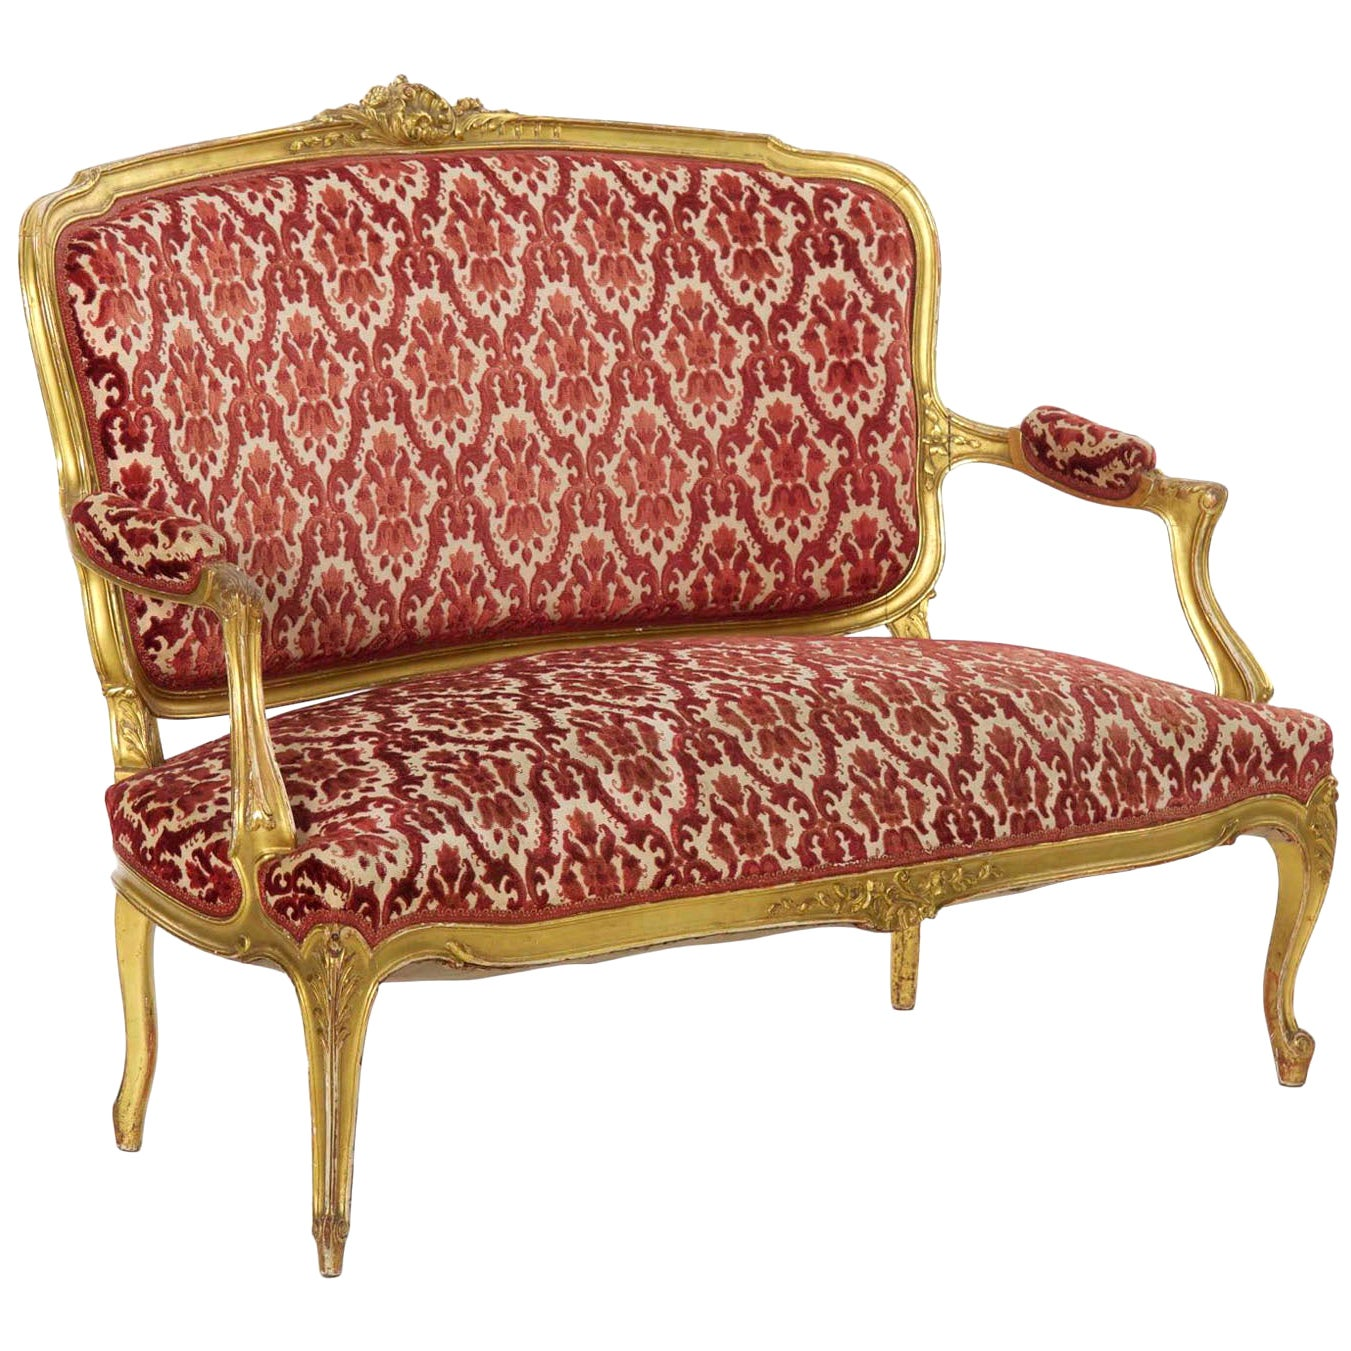 20th Century French Louis XV Style Carved Giltwood Antique Canapé Settee Sofa